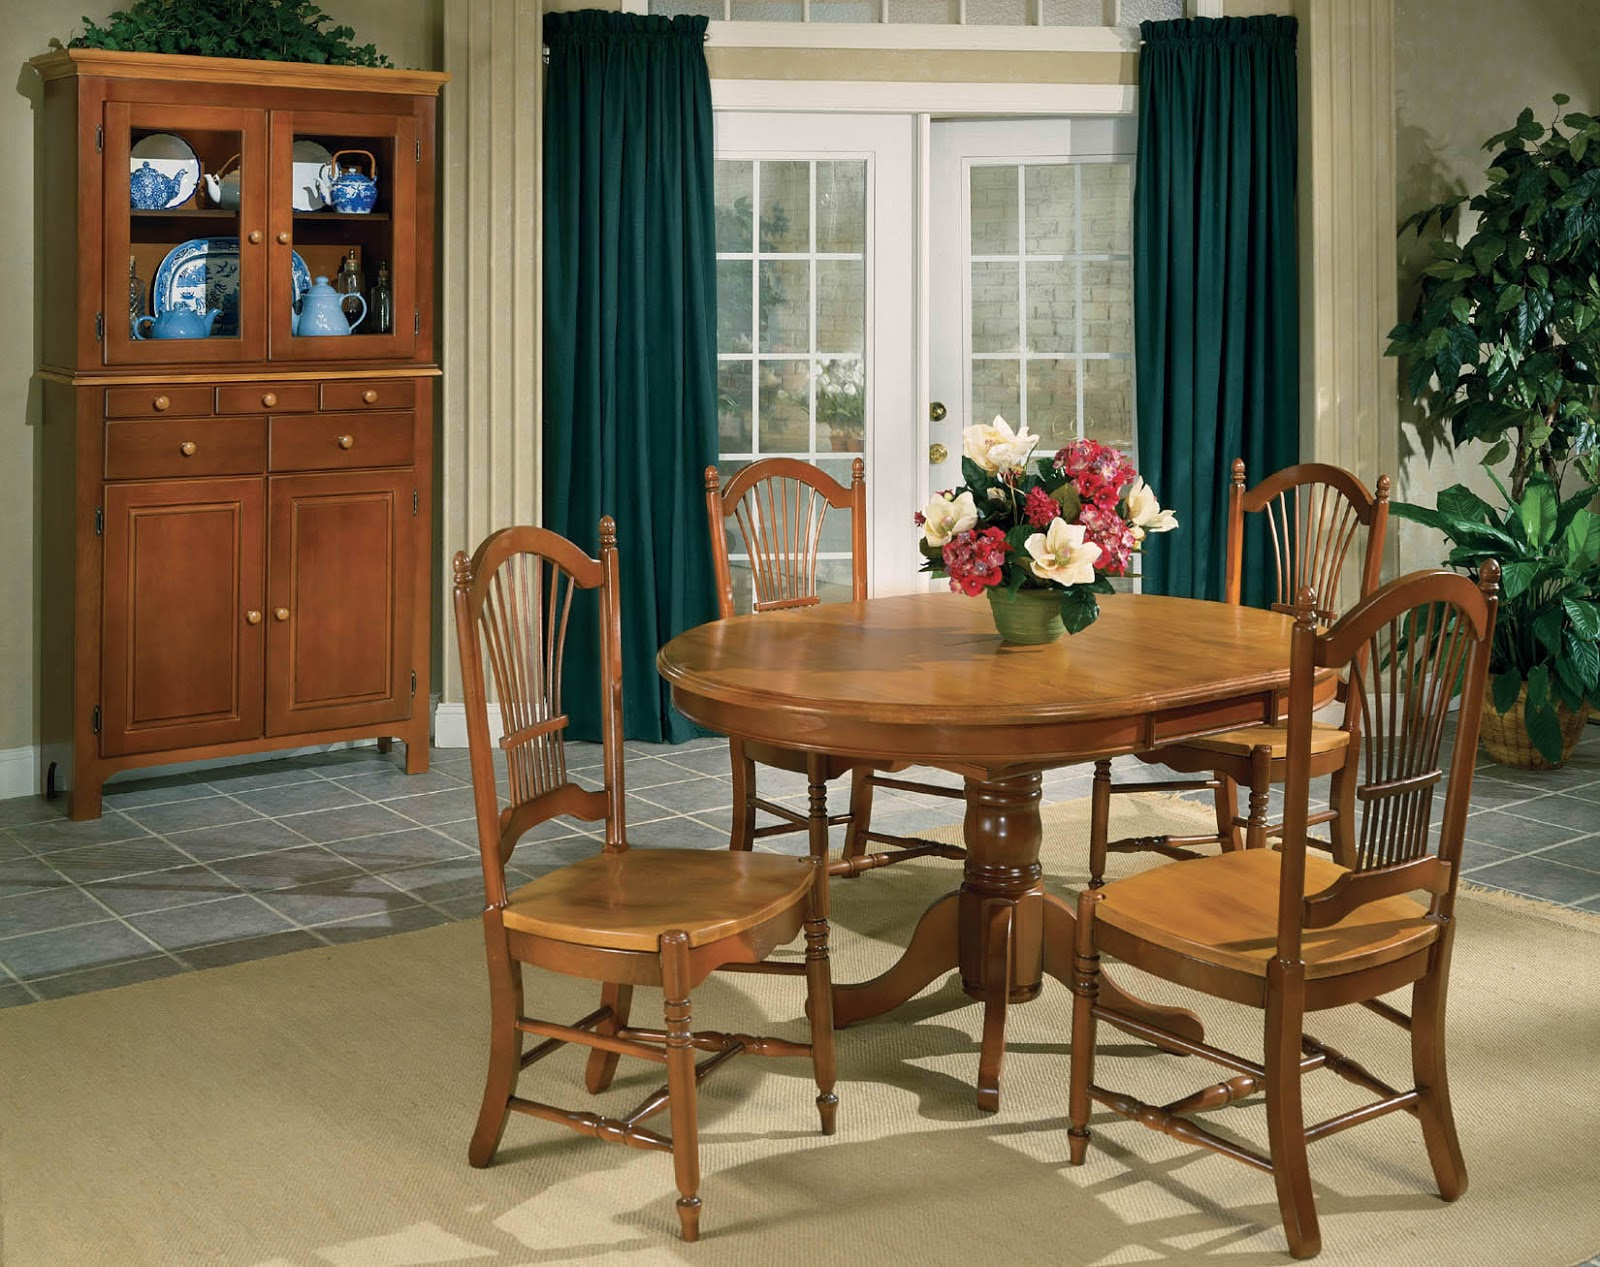 Beechbrook Dining Room Set  DINING ROOMUNIQUE DINETTE